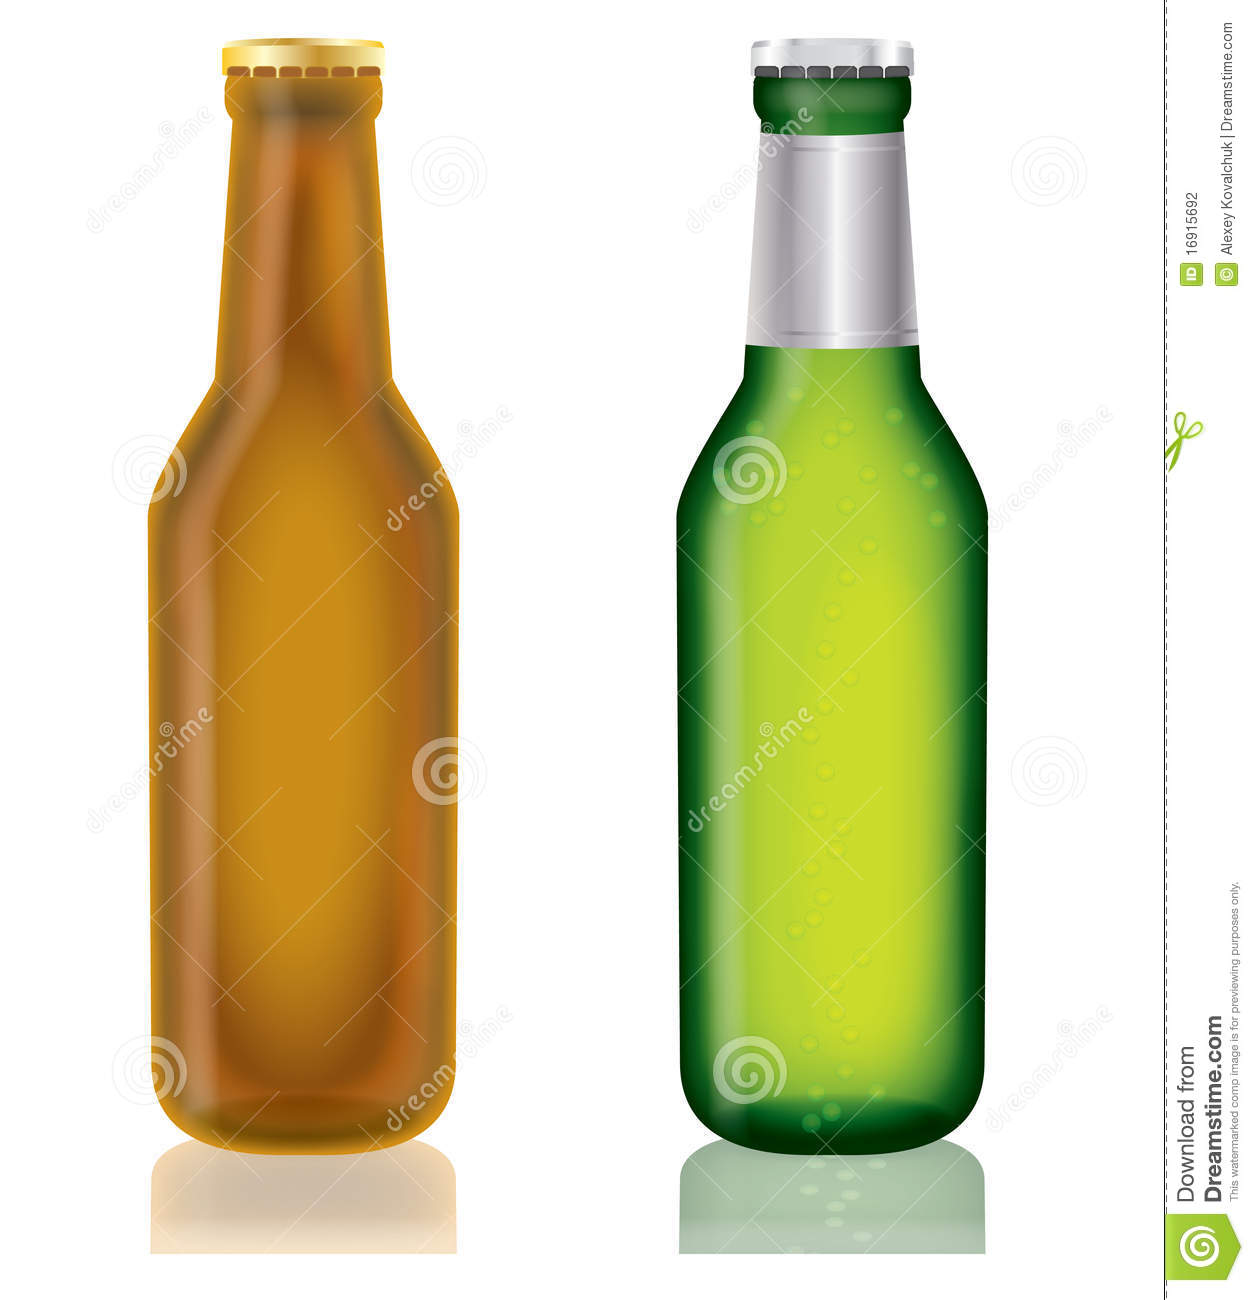 Two Bottles Of Beer,vector Stock Photography - Image: 16915692